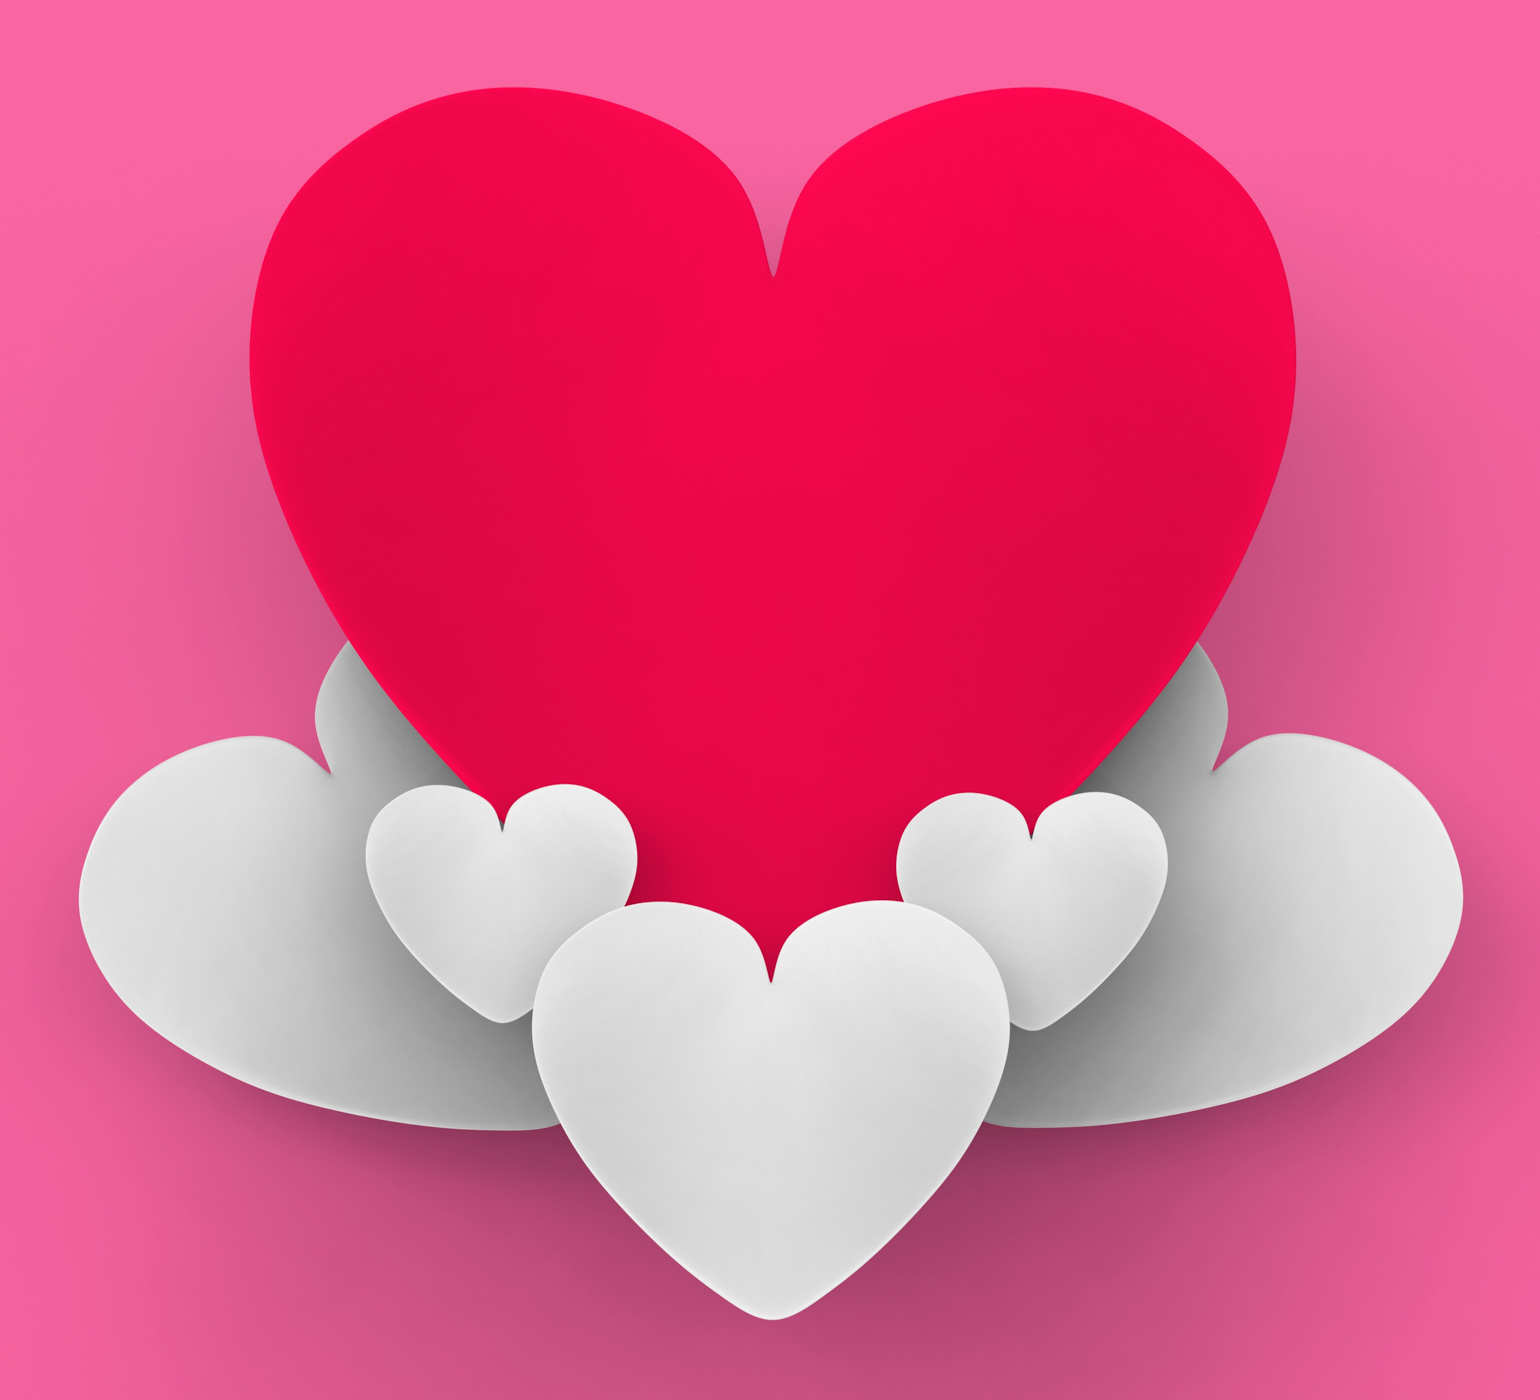 Heart On Heart Clouds Shows Romantic Heaven Or In Love Sensation, Air, High, Sensation, Romantic, HQ Photo